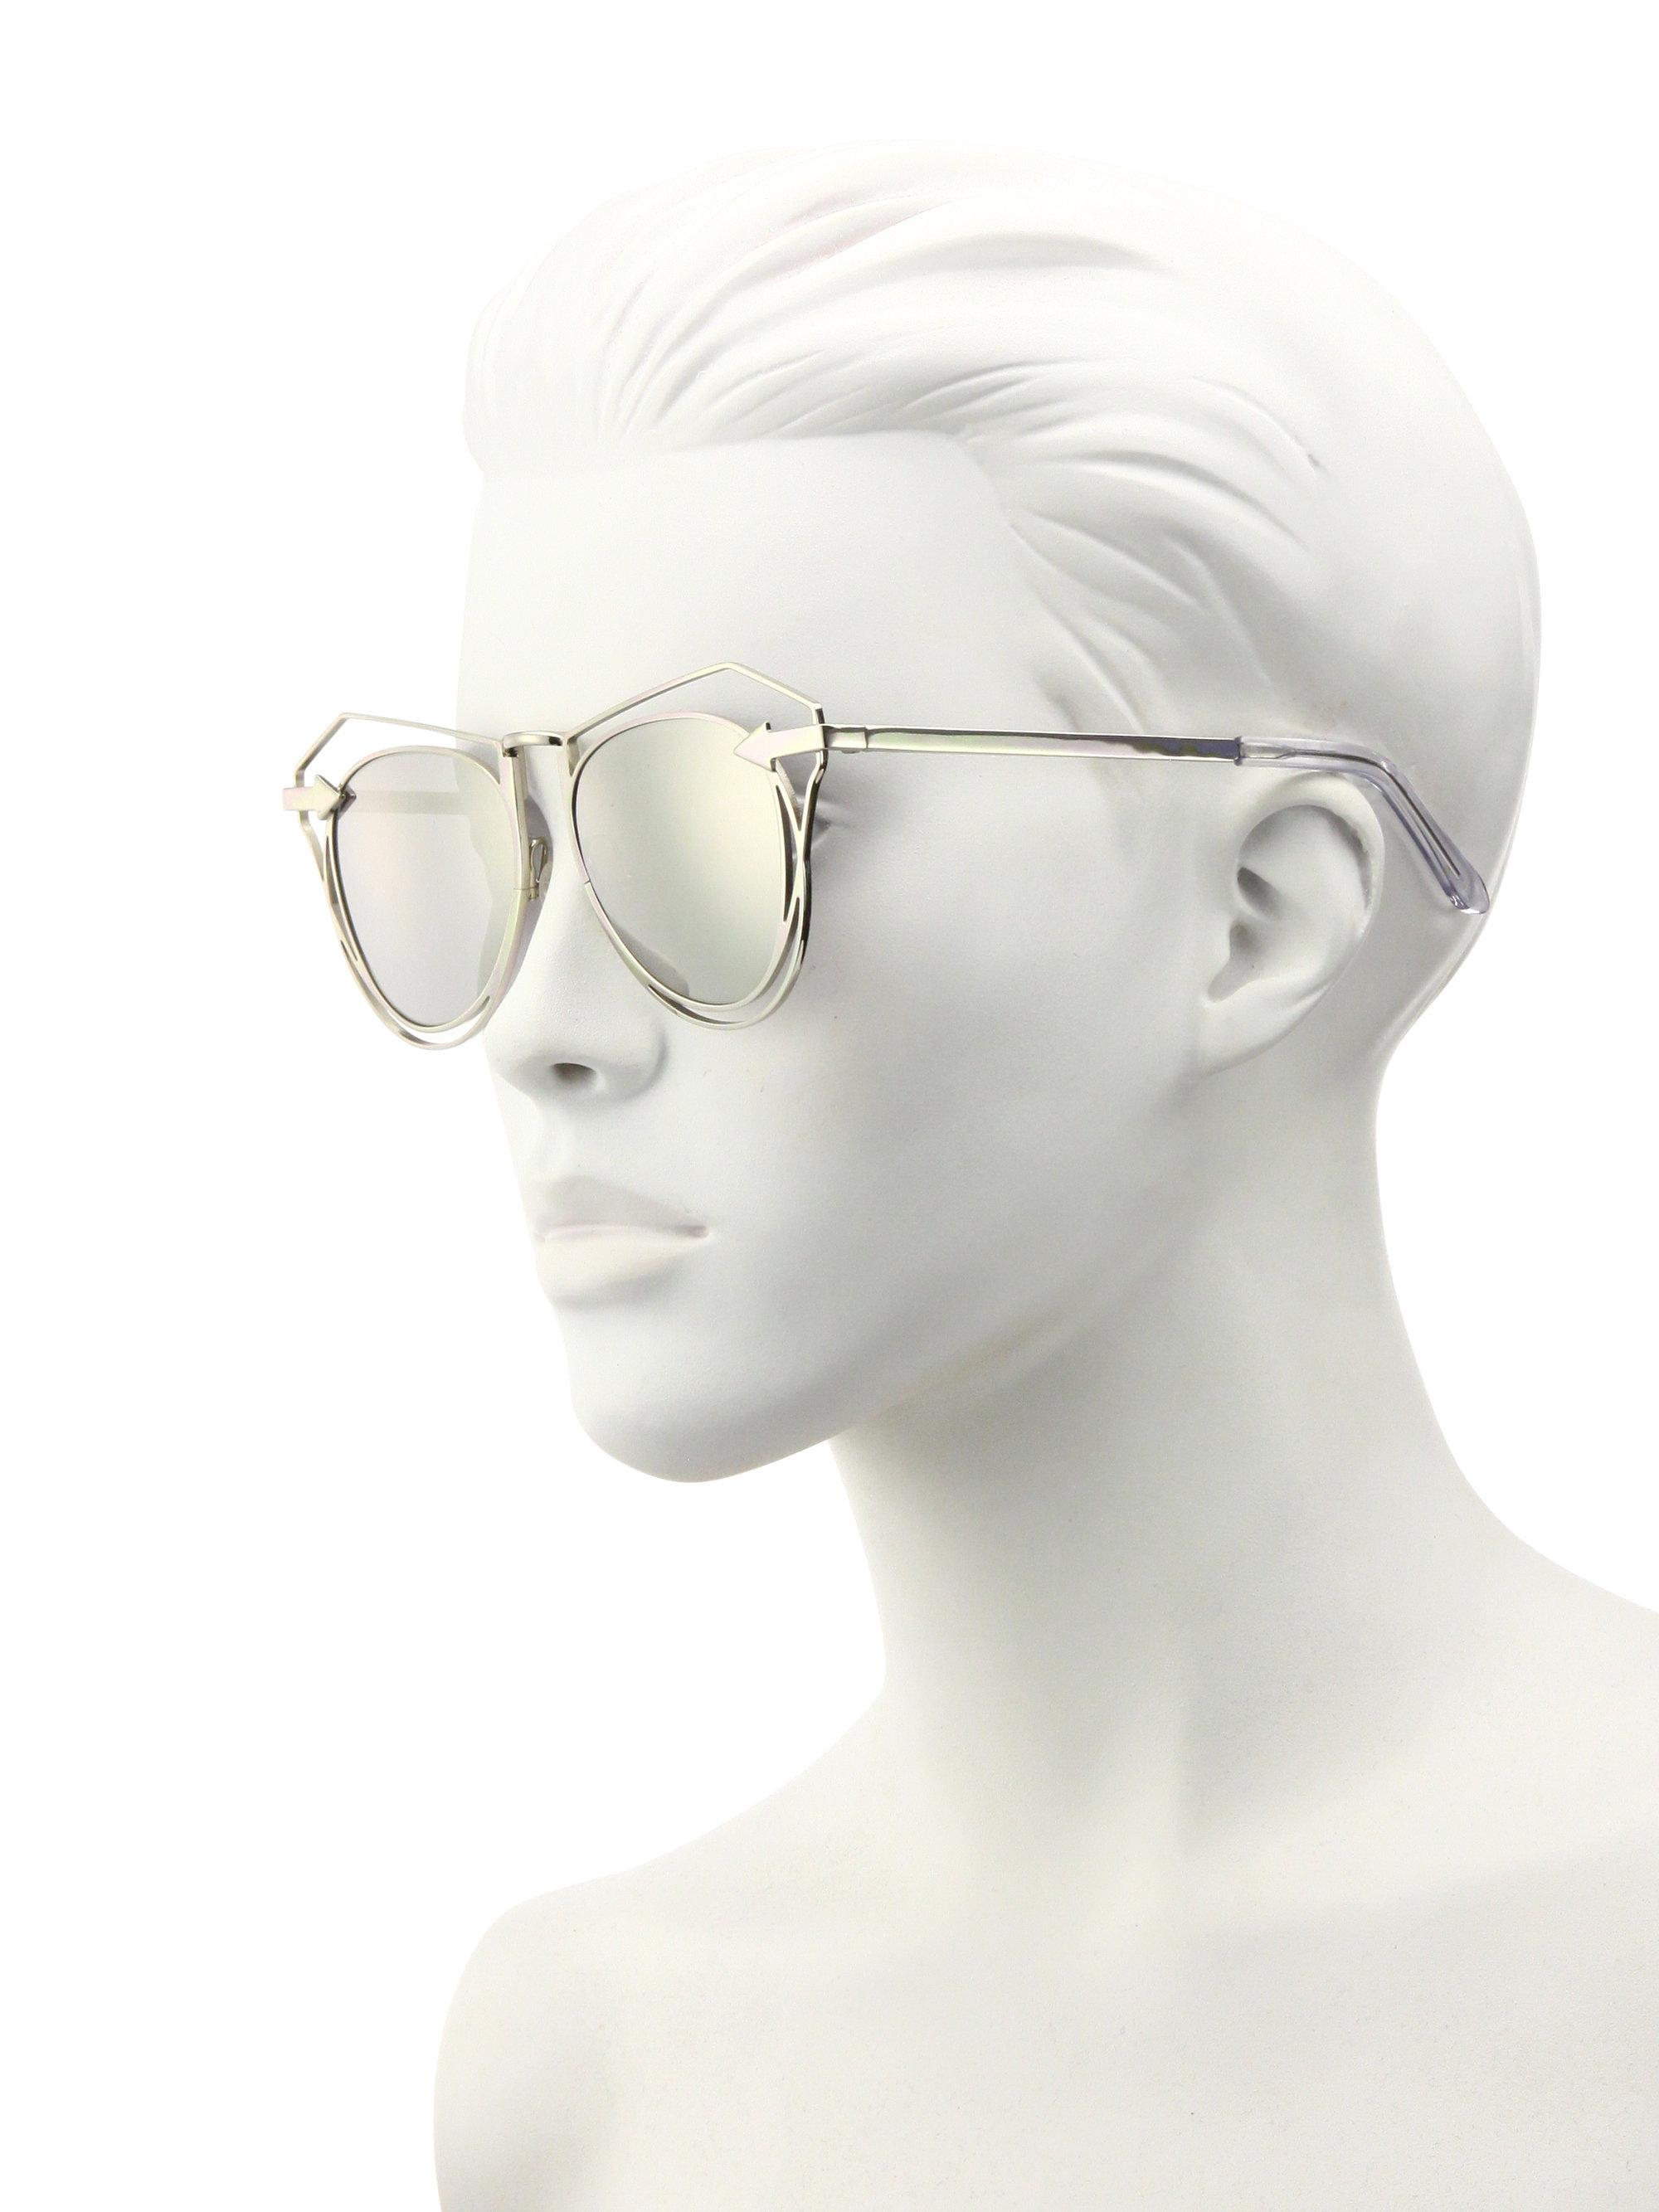 b63c2ee609cdd Karen Walker Marguerite 52mm Mirrored Cutout Cat Eye Sunglasses in ...